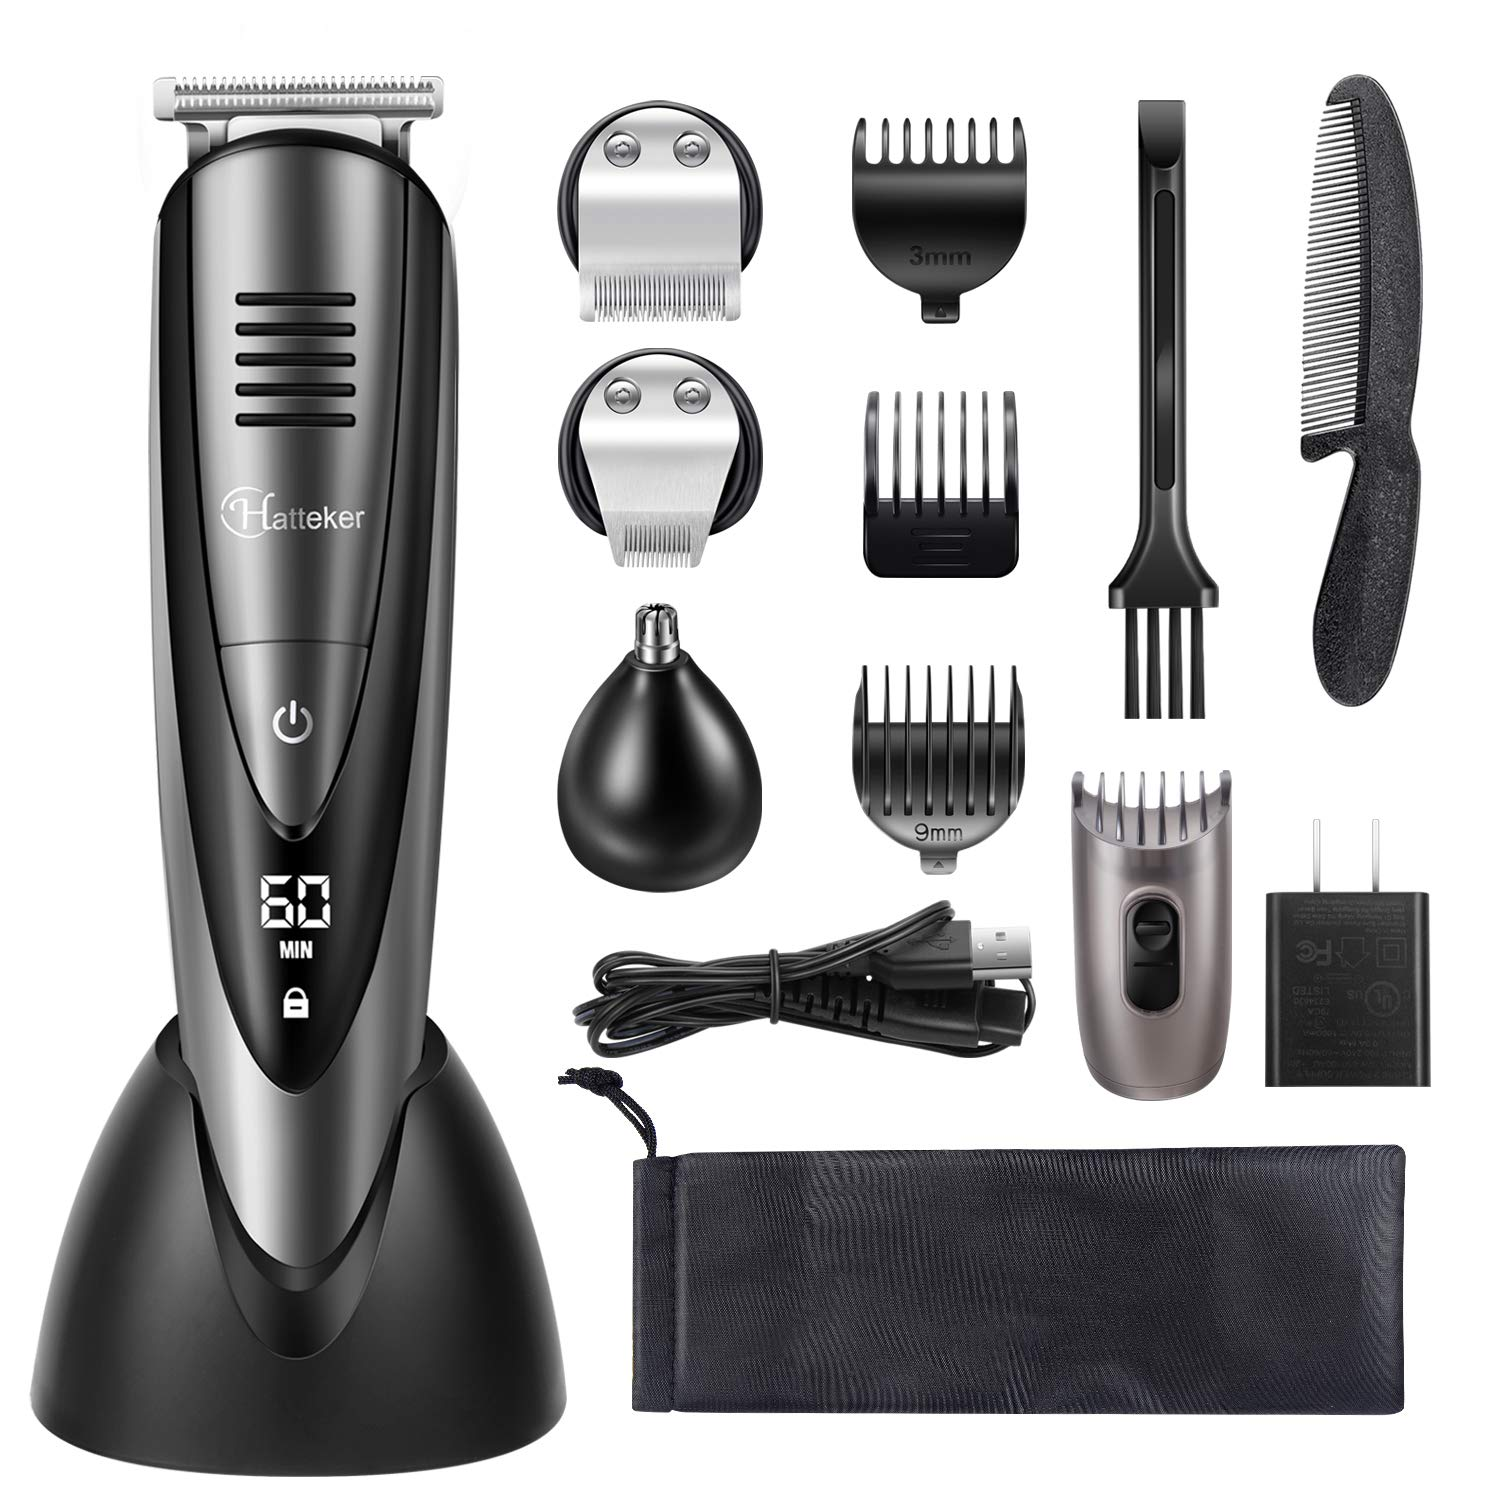 Hatteker Mens Beard Trimmer Grooming Kit Cordless Mustache Trimmer Hair Trimmer Clippers Ear Nose Trimmer Waterproof 4 in 1 USB Rechargeable